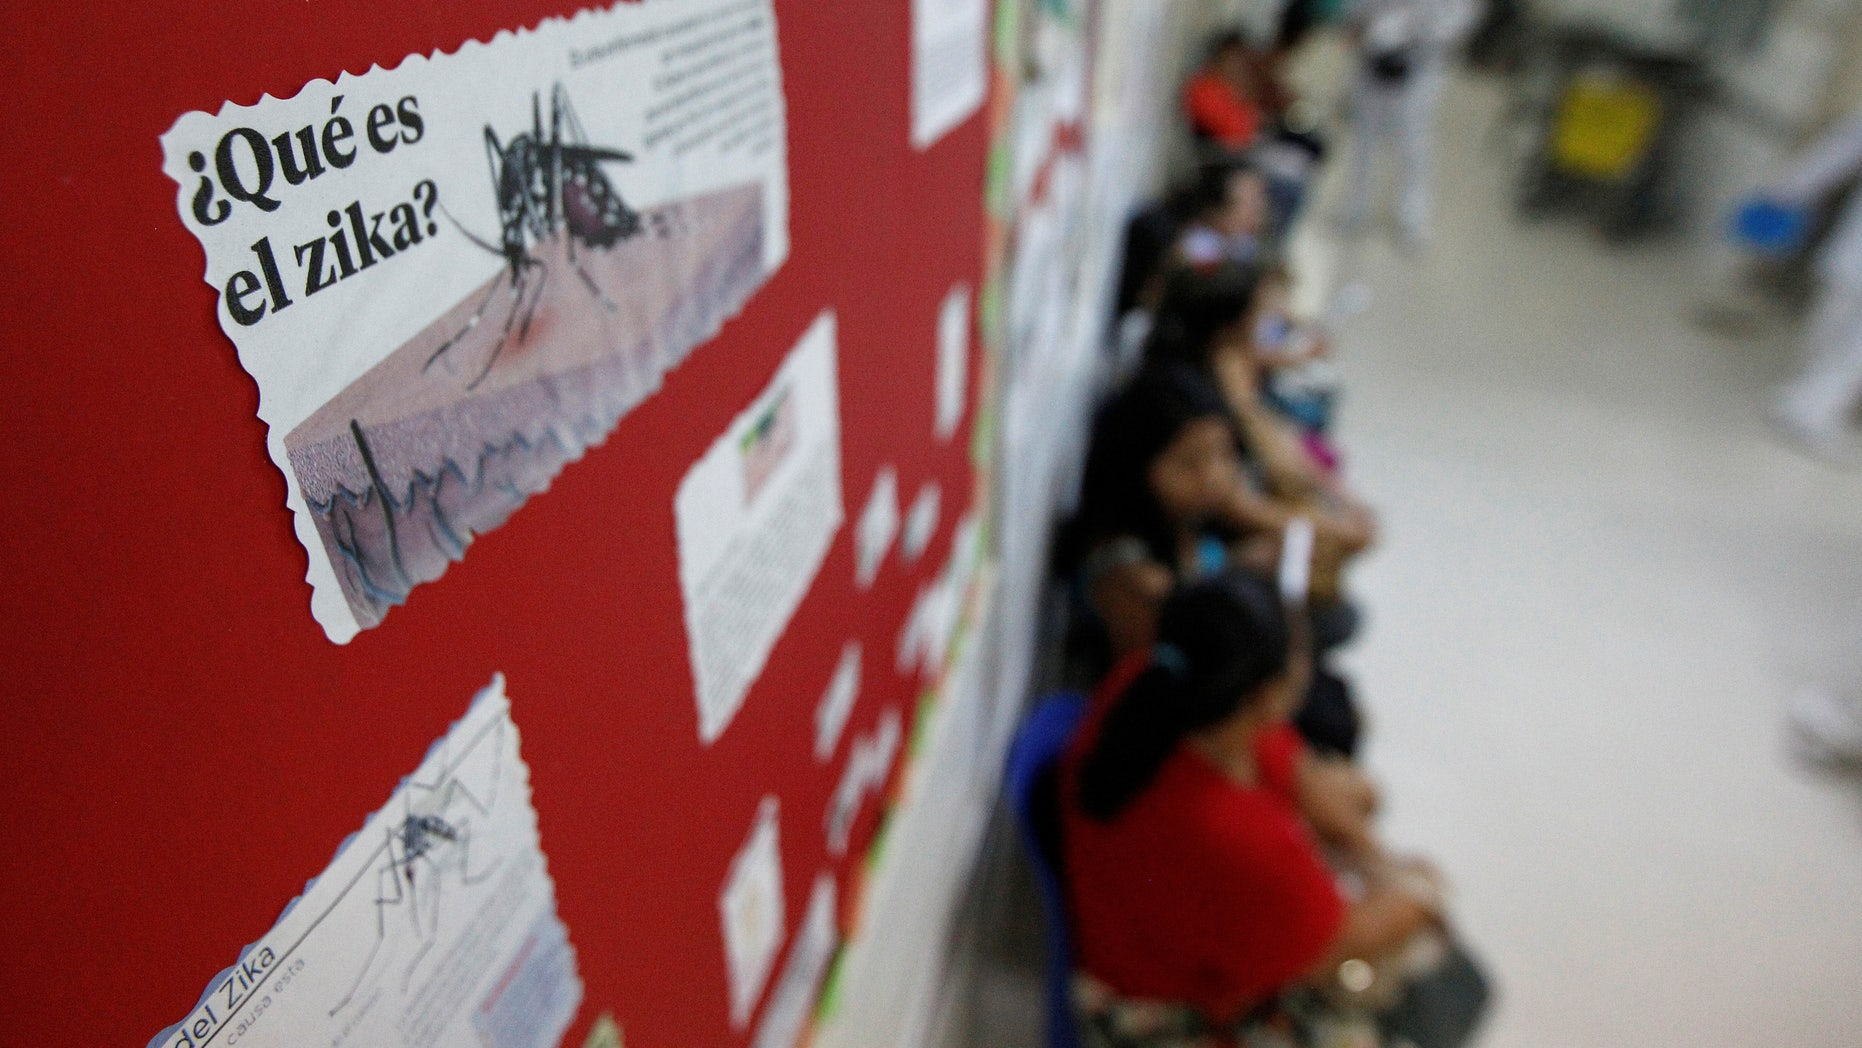 A flyer explaining what is Zika is posted at the maternity ward of the Hospital Escuela in Tegucigalpa, Honduras April 15, 2016. REUTERS/Jorge Cabrera